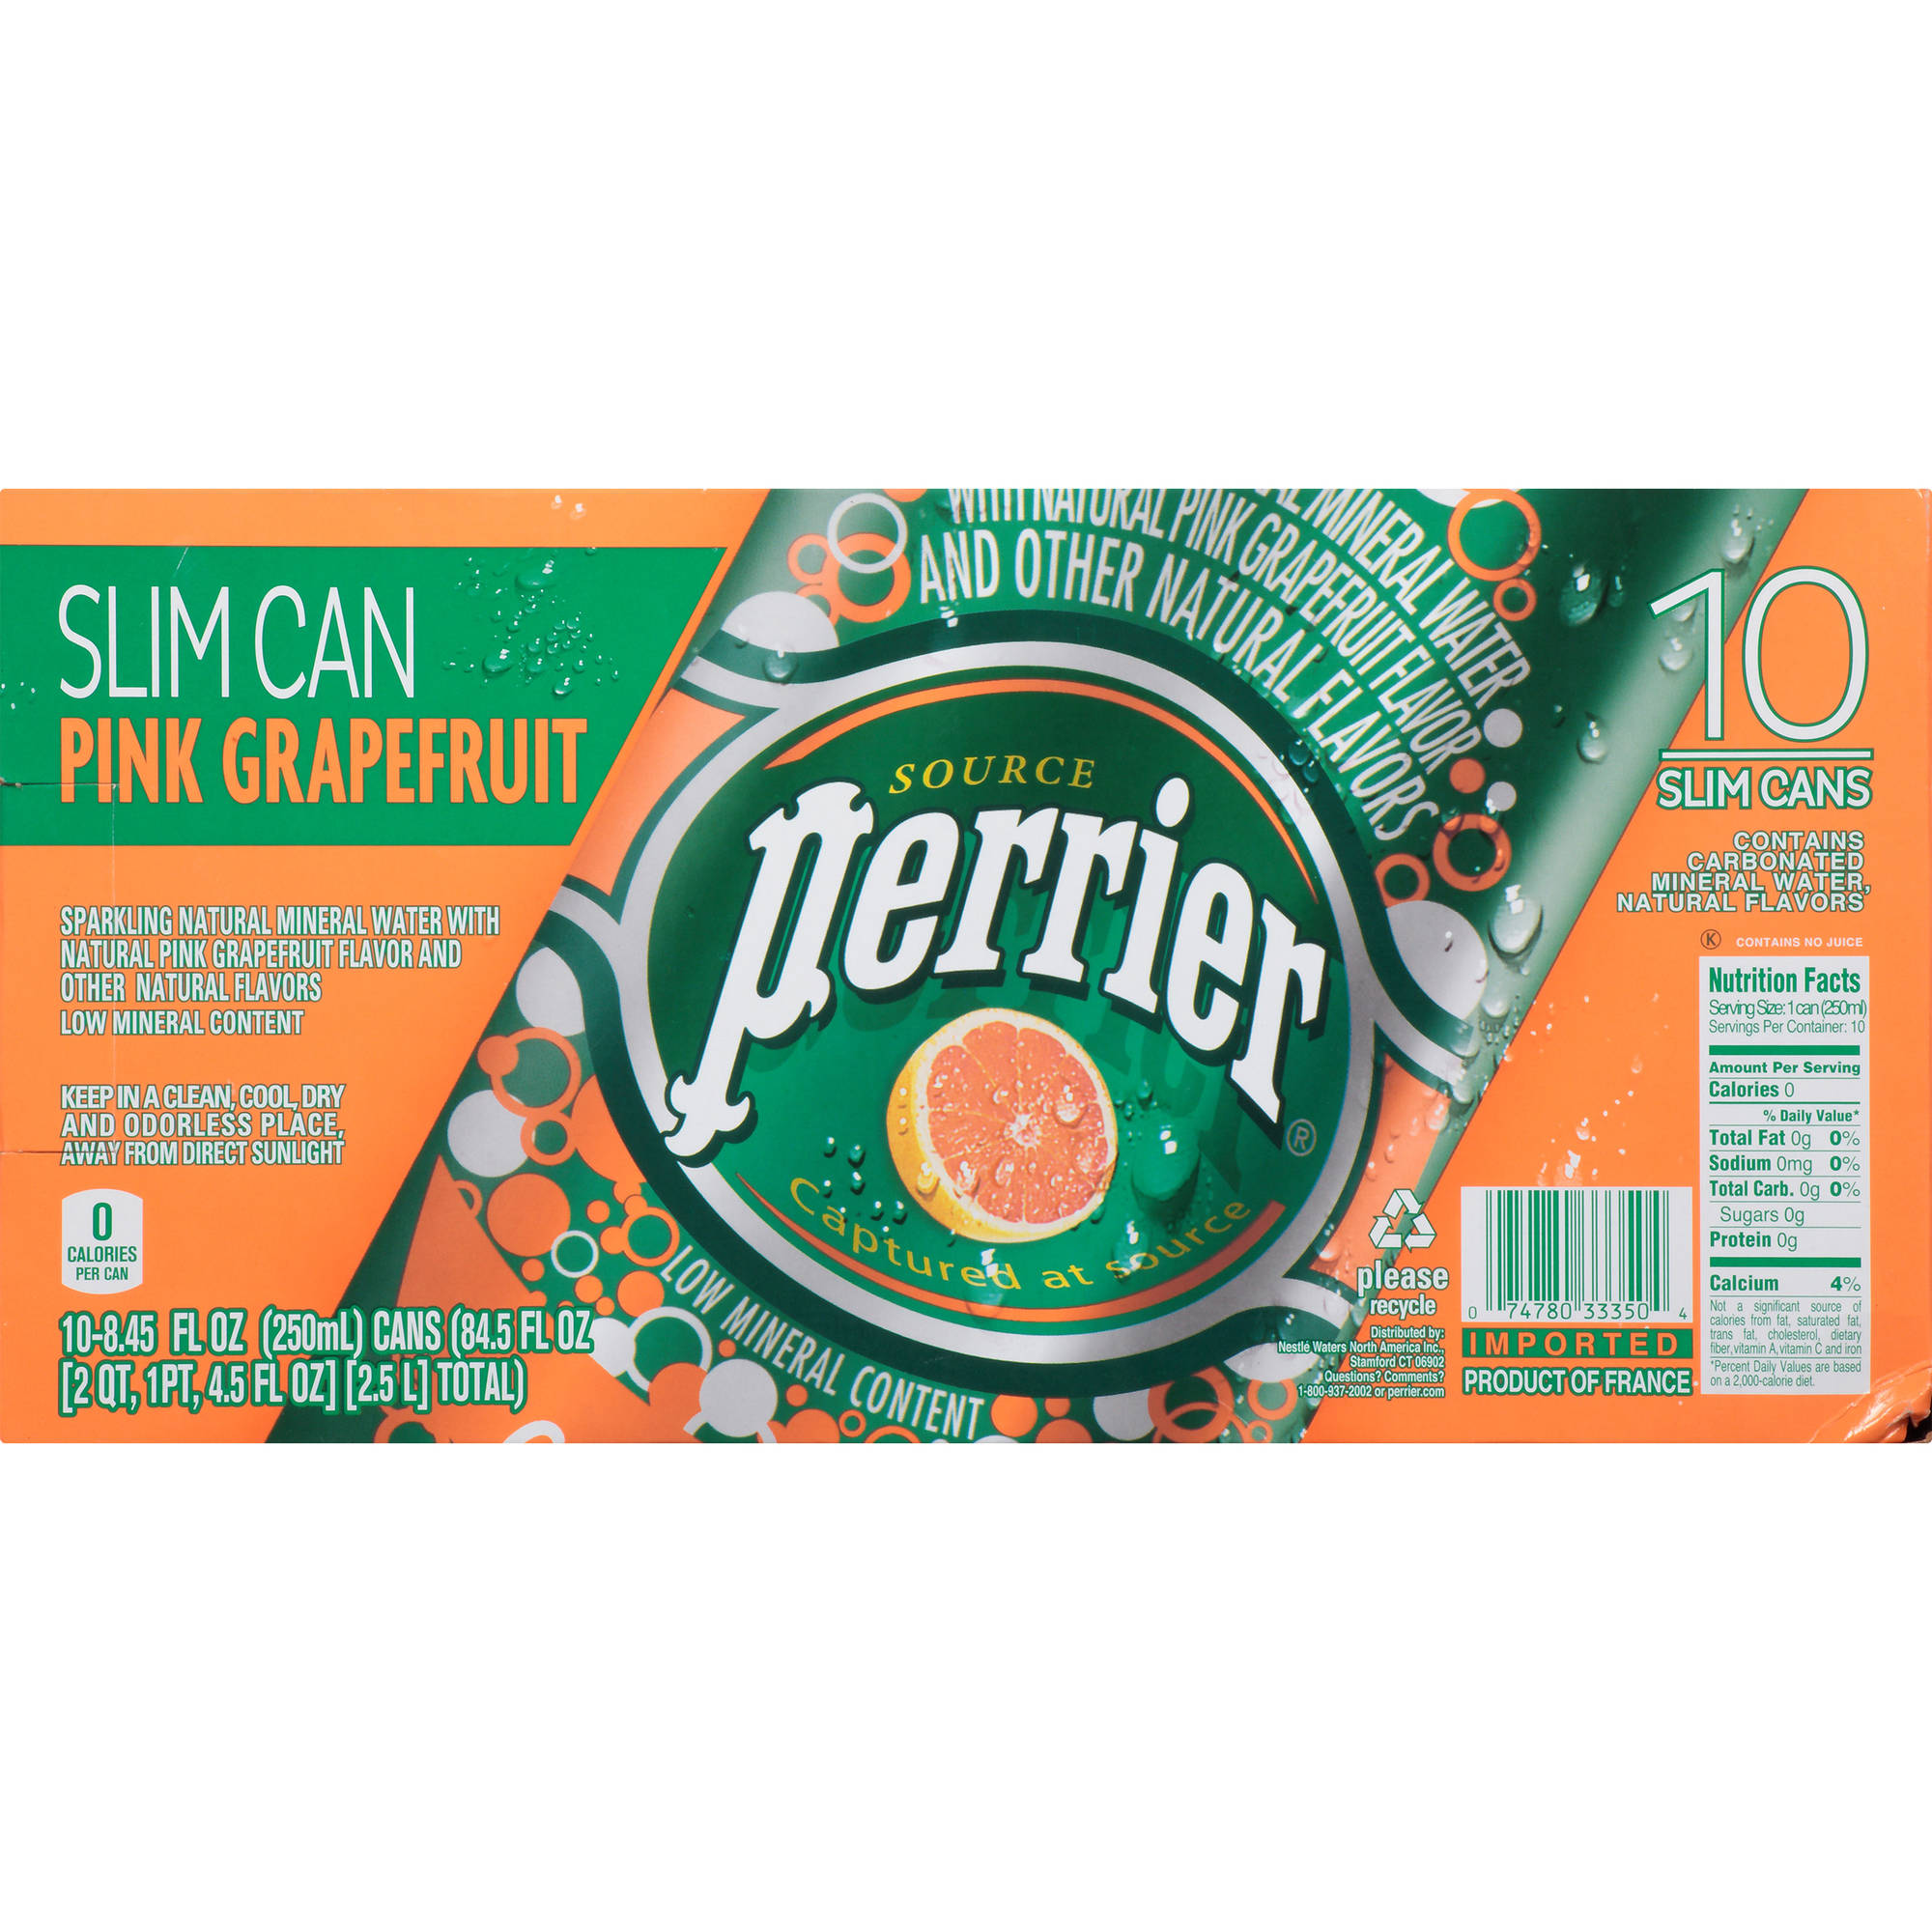 PERRIER Pink Grapefruit Flavored Carbonated Mineral Water 10-8.45 fl. oz. Cans